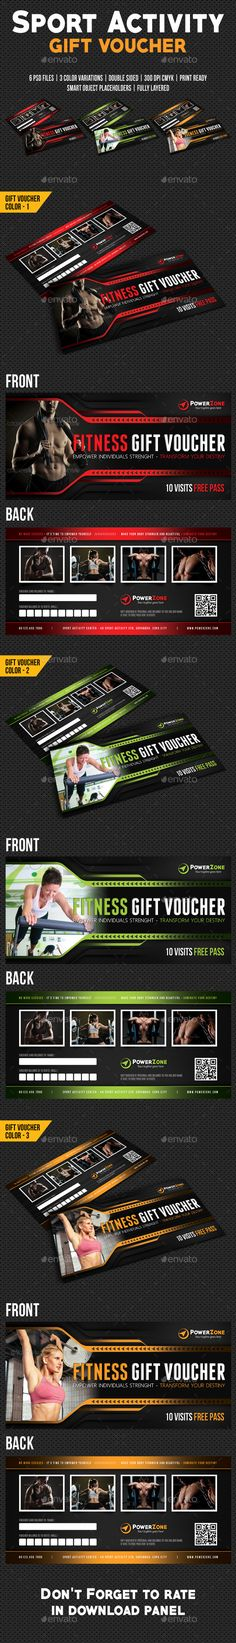 Sport Activity Gift Voucher 04 - Cards & Invites Print Templates